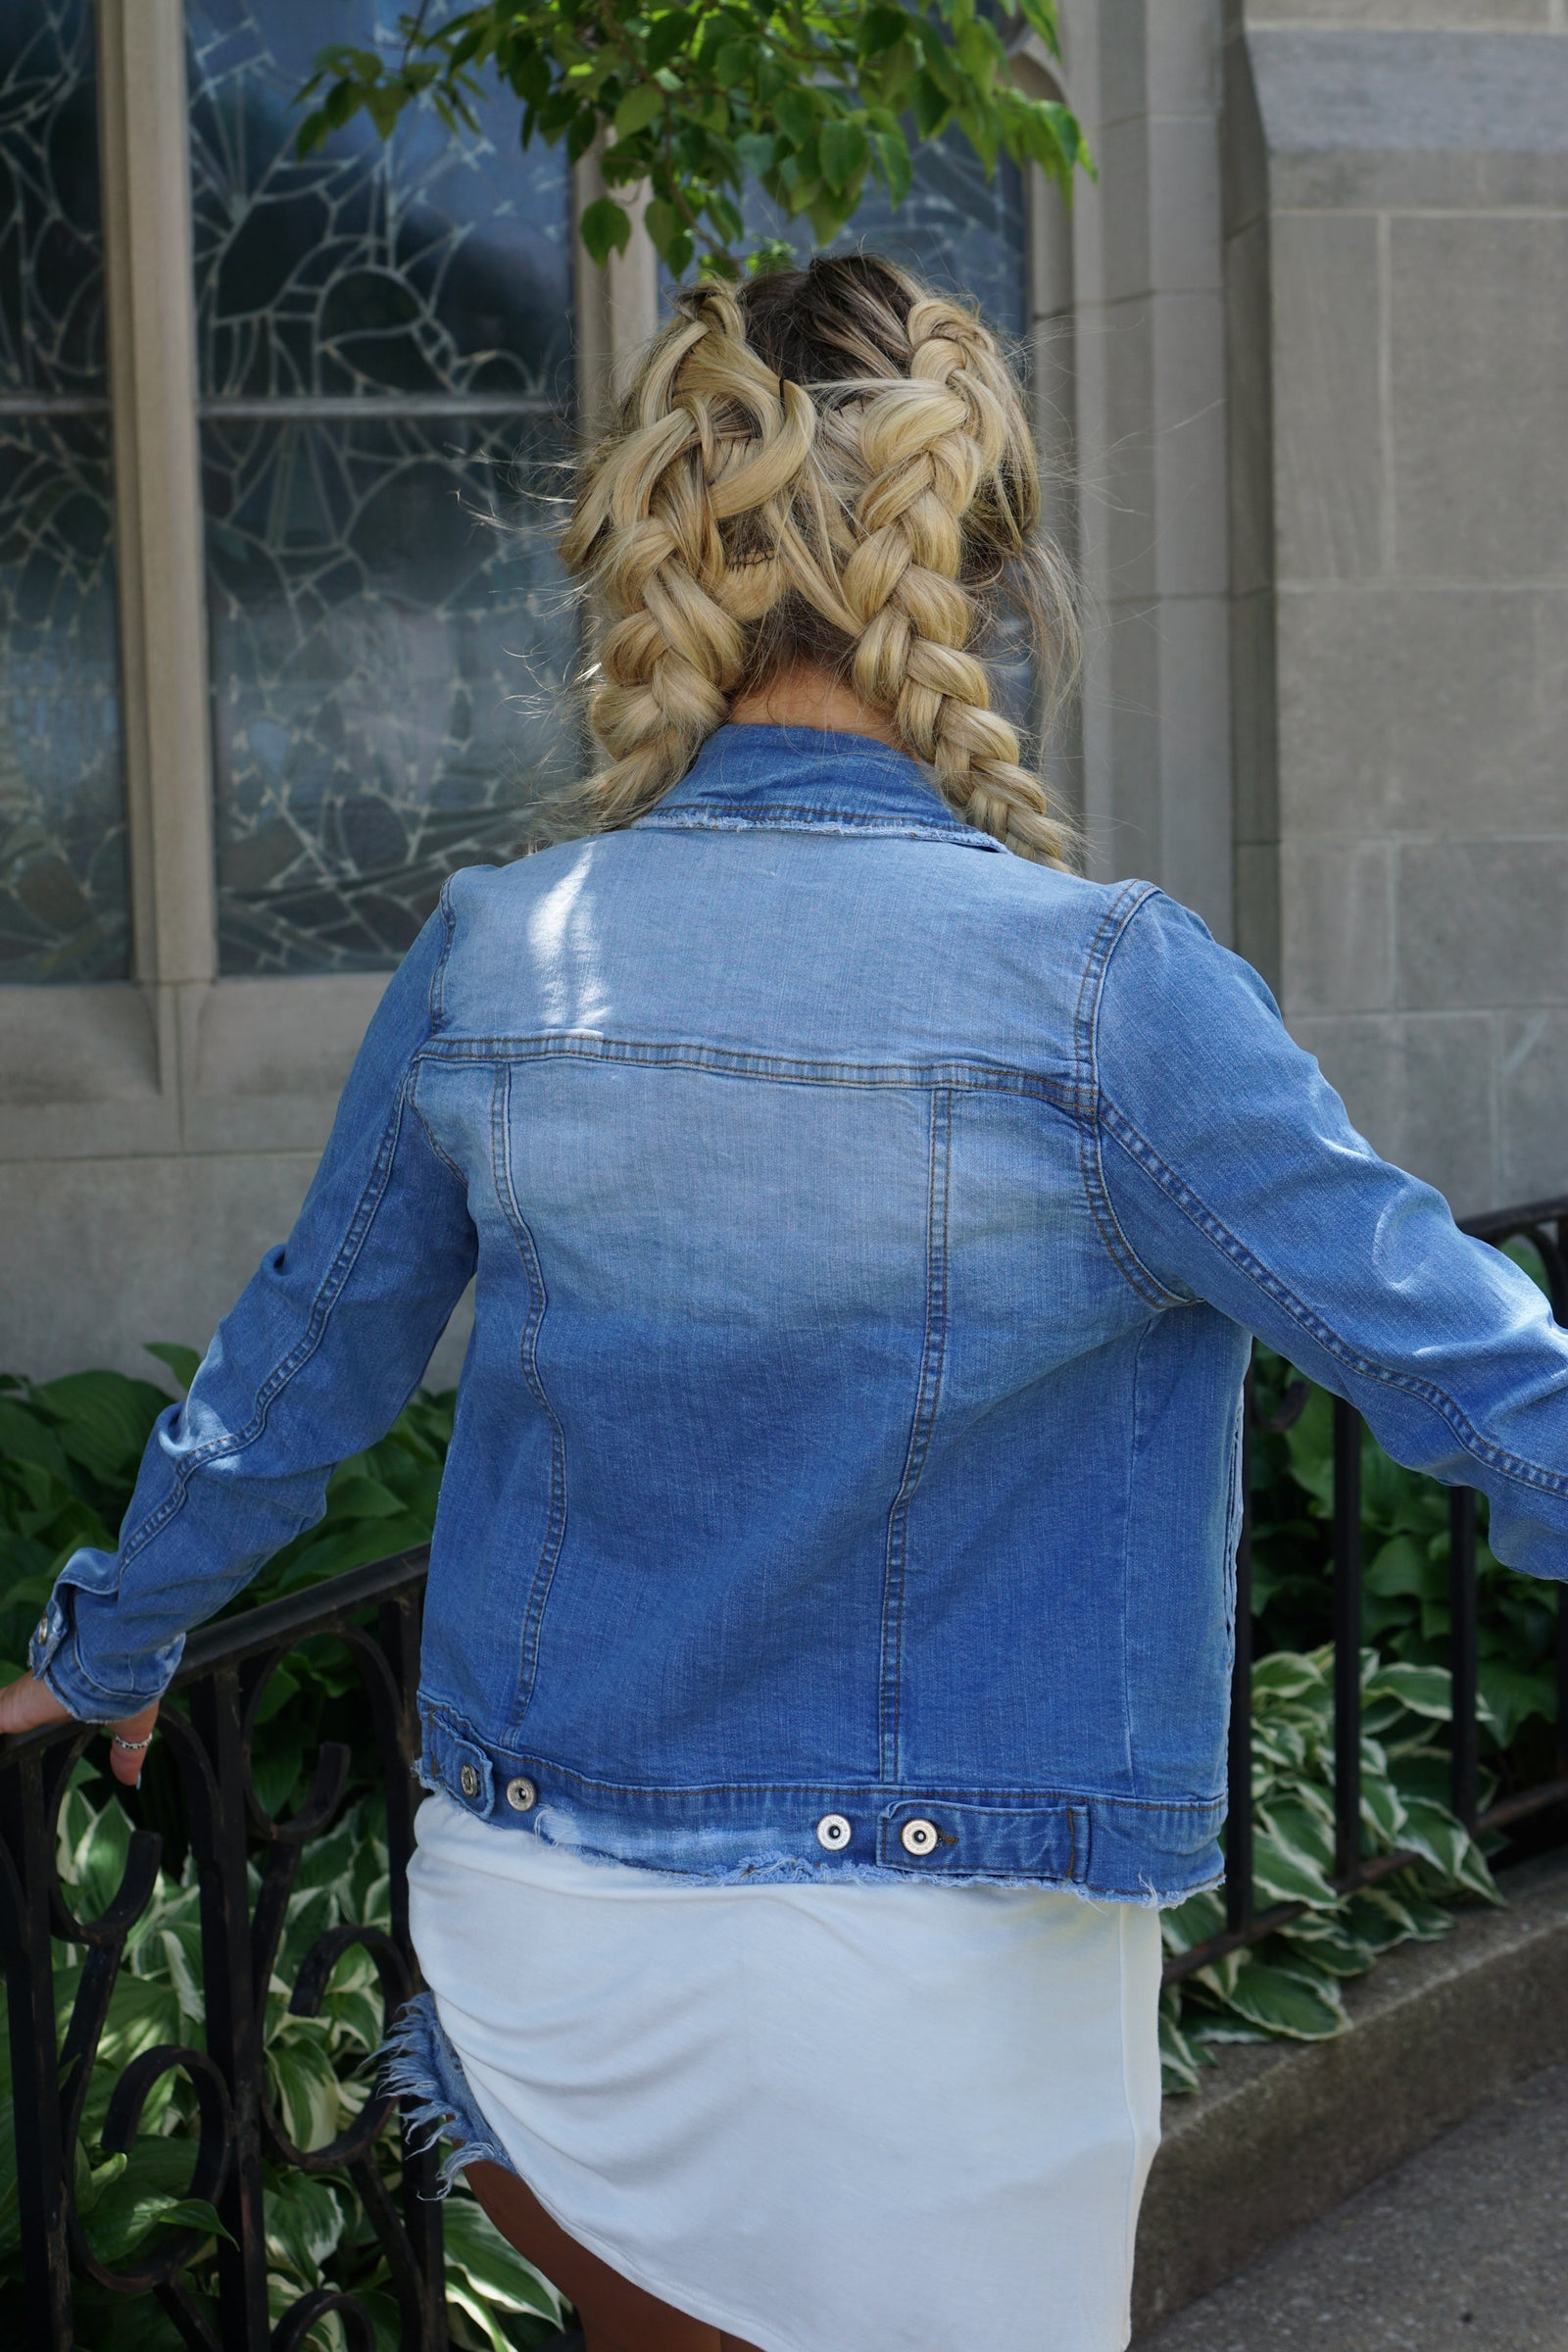 Livin' In This Medium Wash Denim Jacket